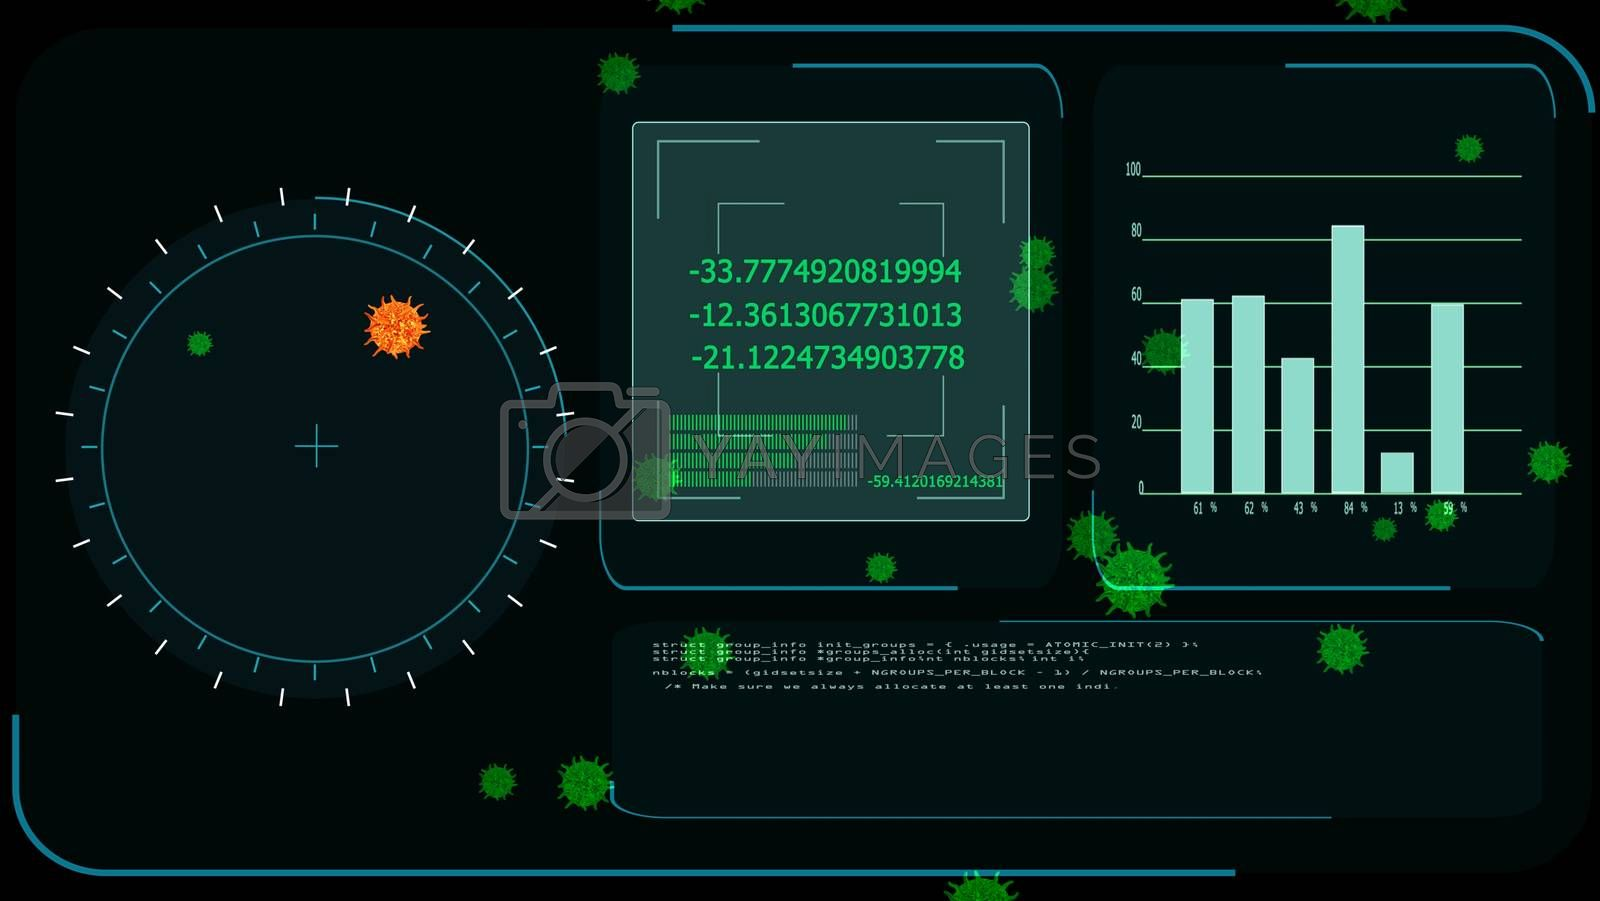 lava virus covid 19 was detedted by digital radar analysis information on monitor to find vaccine and medicine and green virus on screen